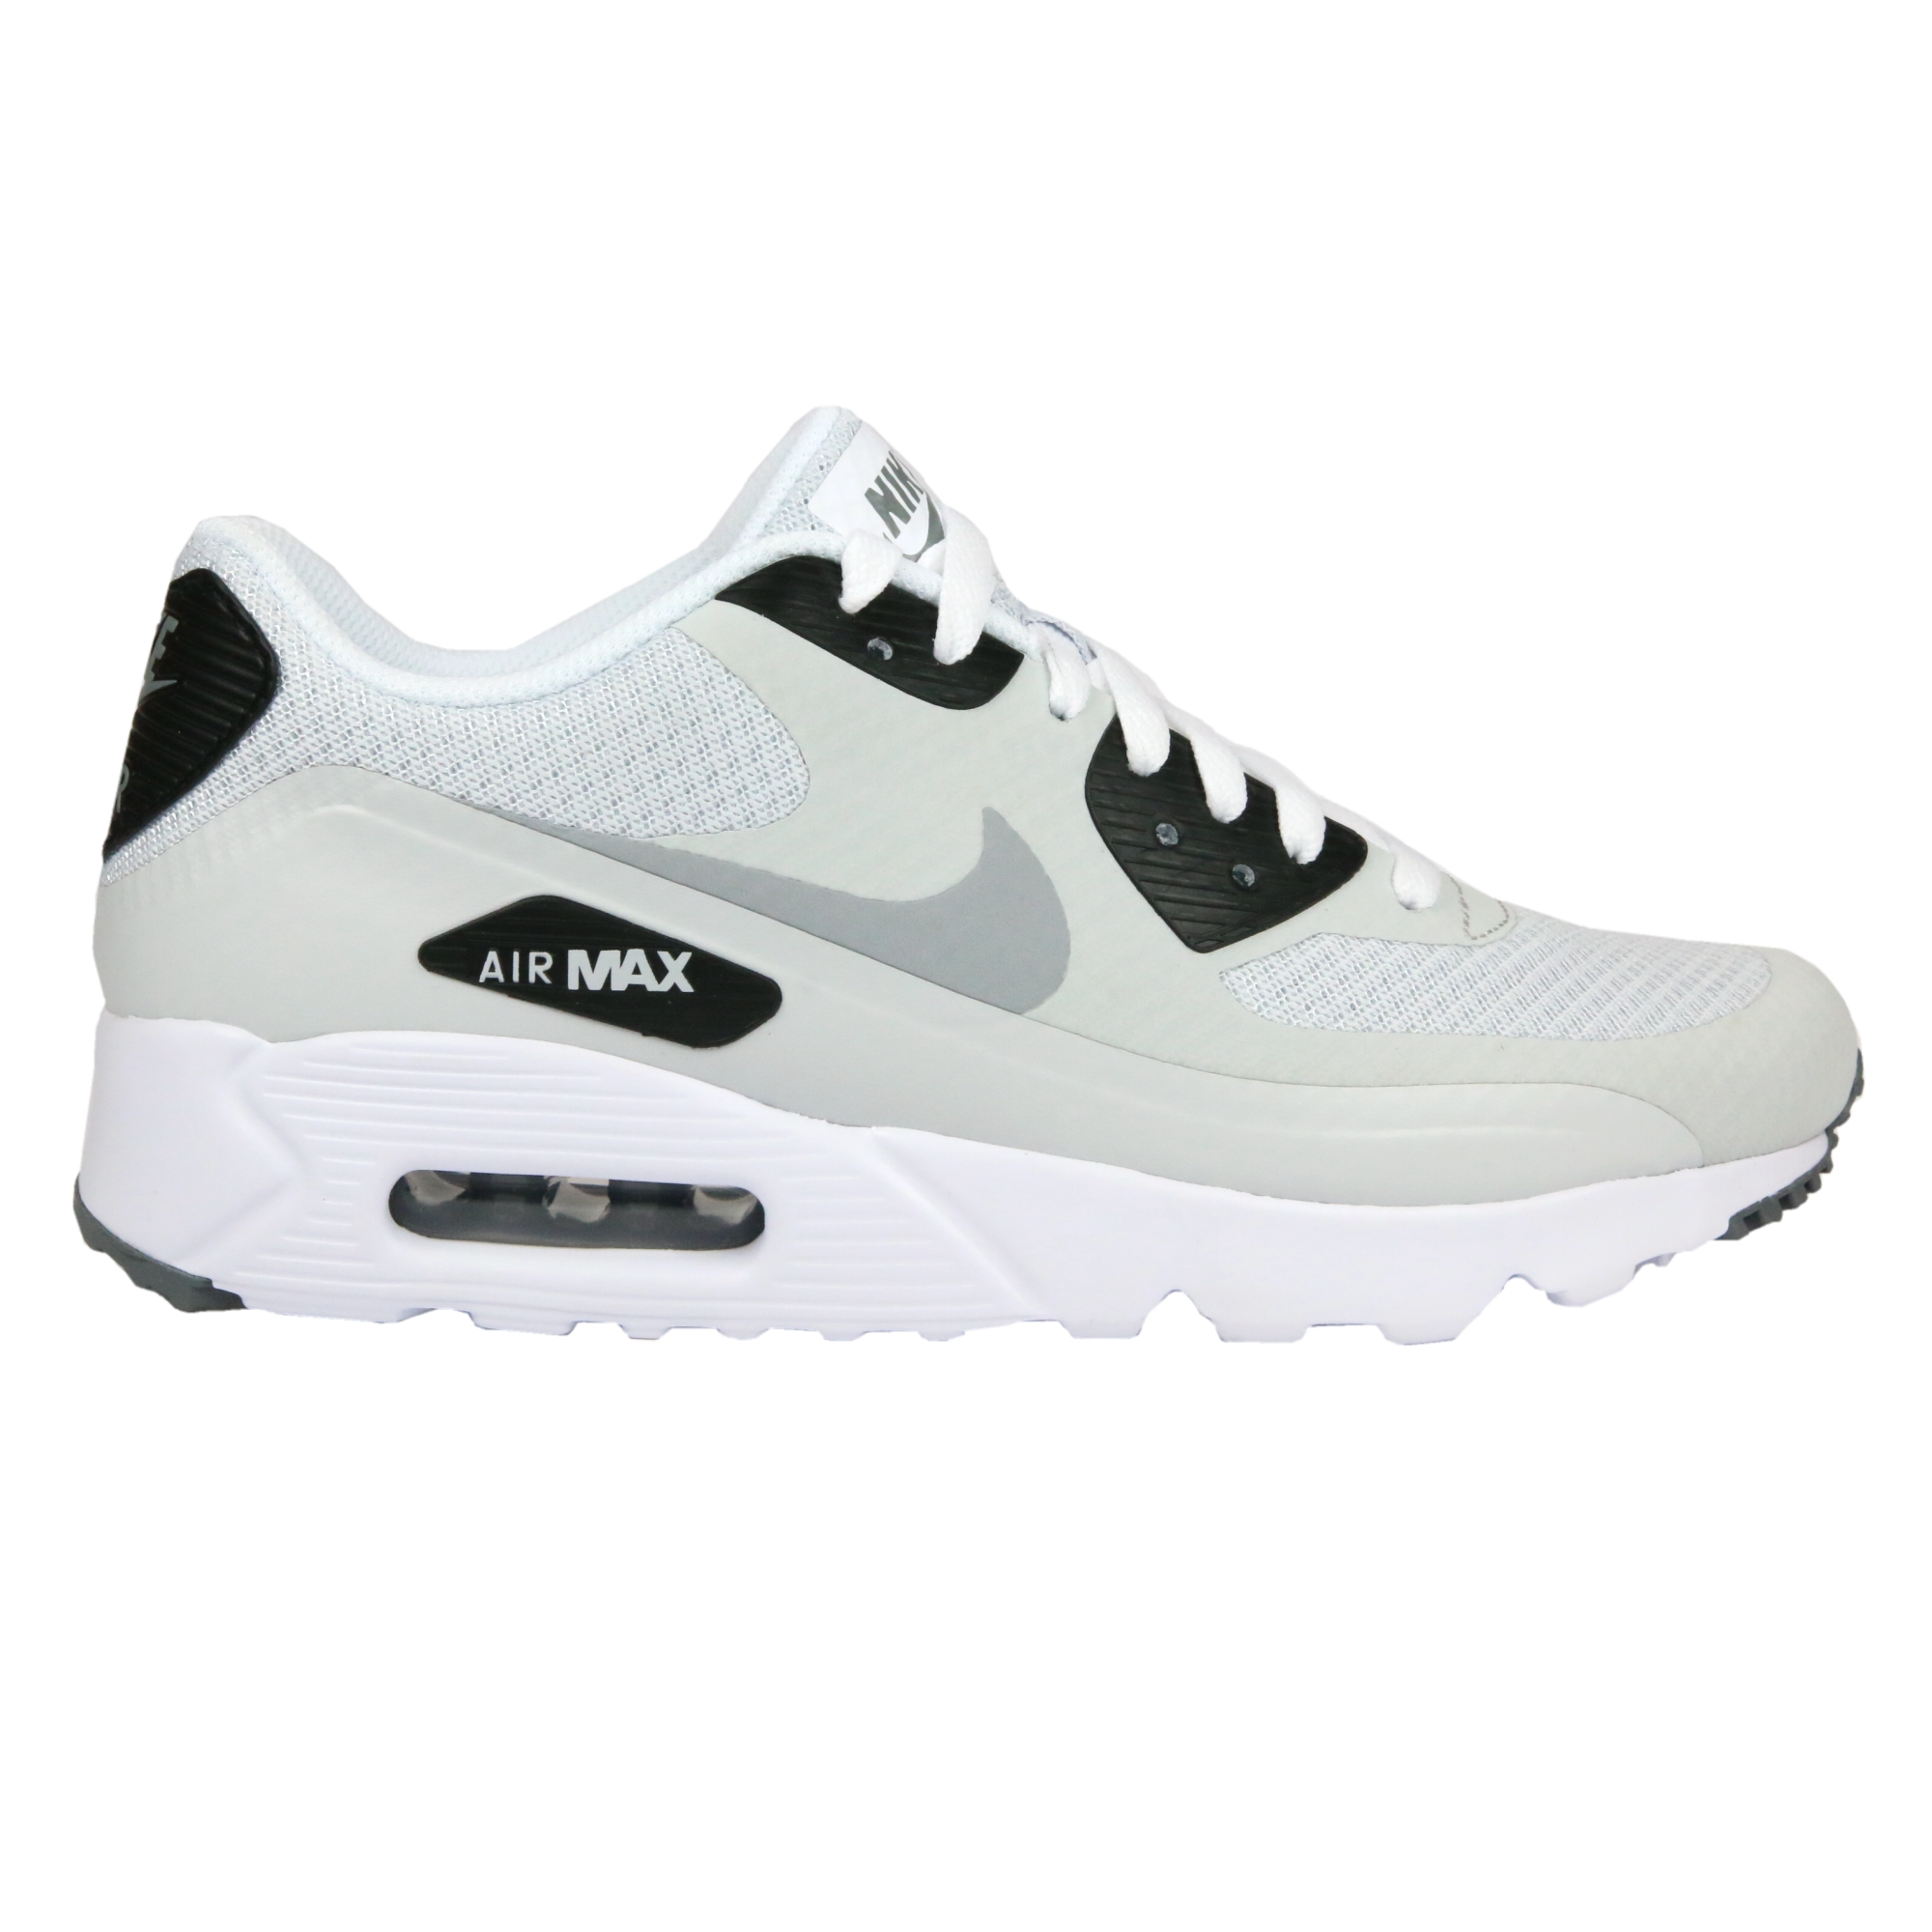 nike air max 90 ultra essential schuhe turnschuhe sneaker herren ebay. Black Bedroom Furniture Sets. Home Design Ideas